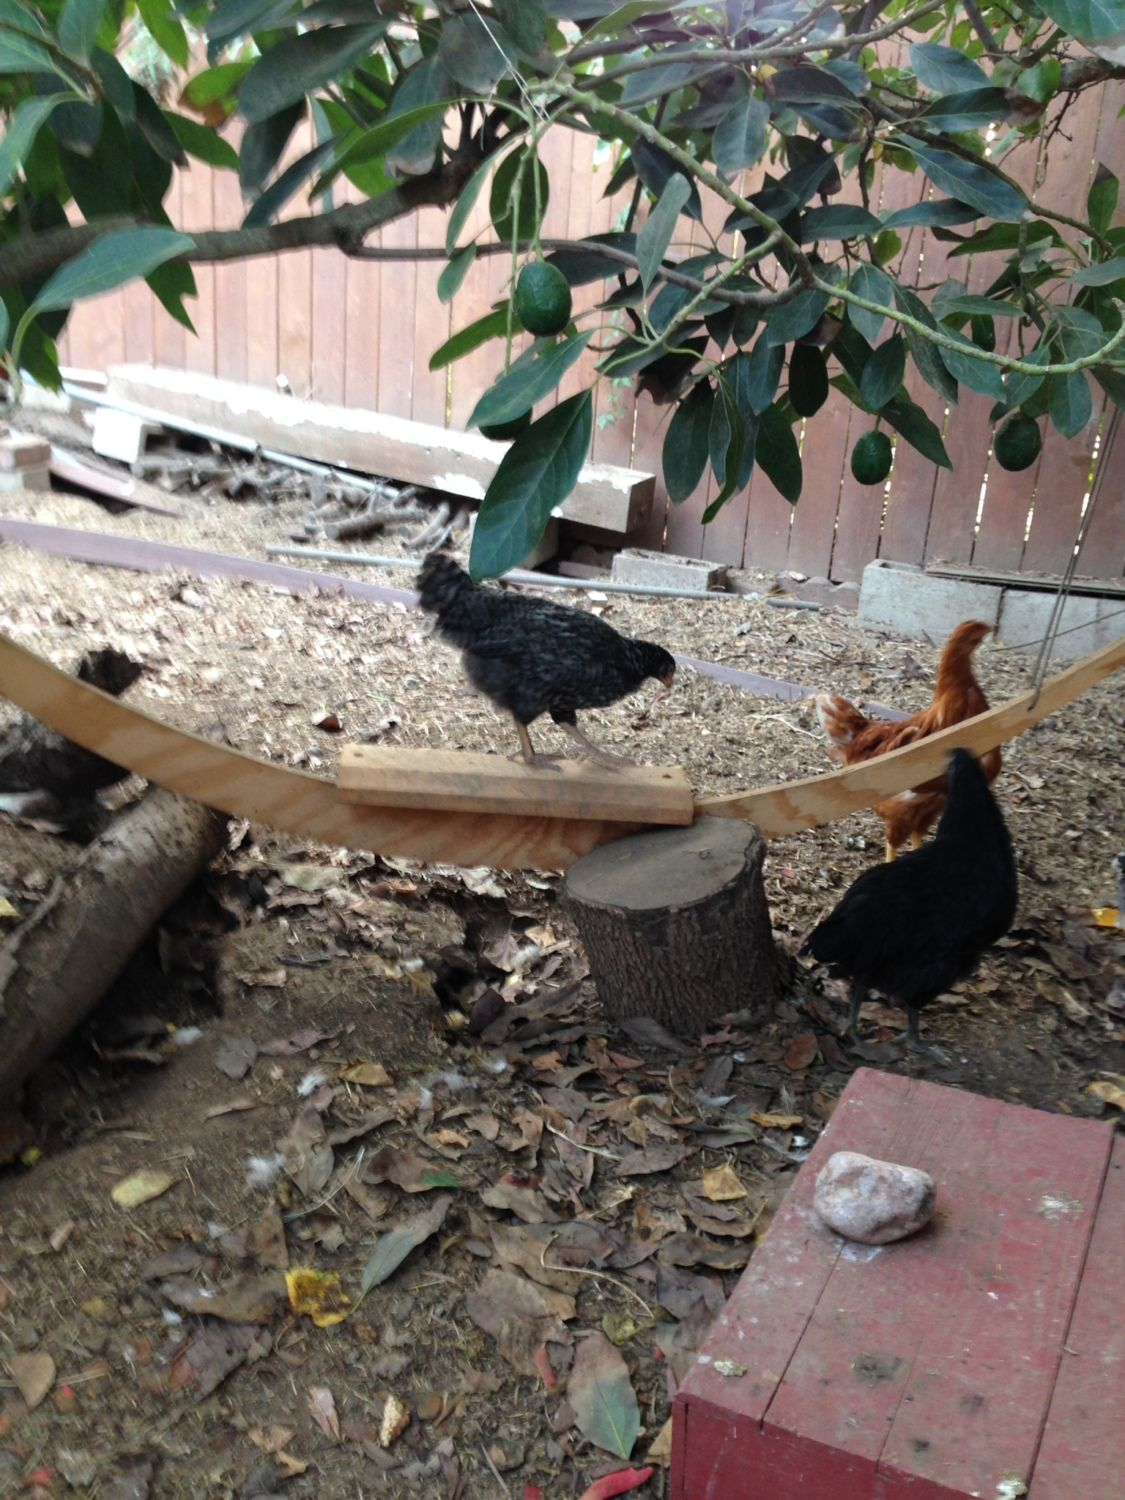 Amelia checking out the chicken swing under the avocado tree in the chicken yard